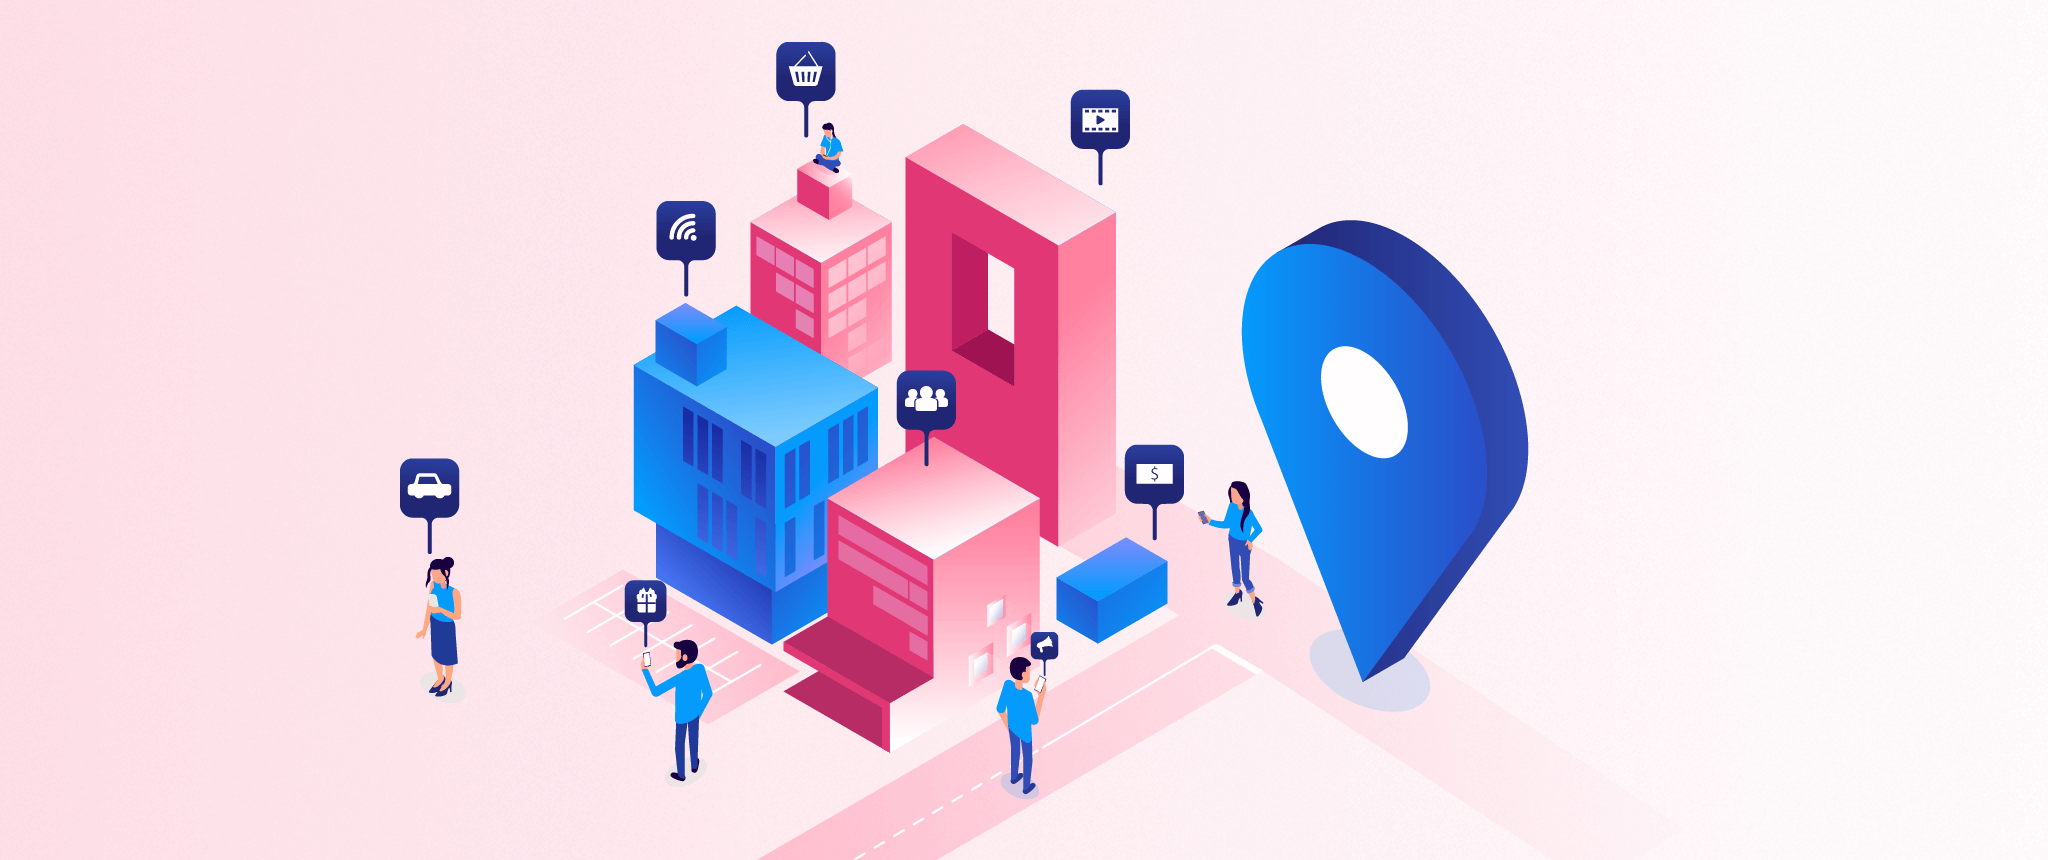 Location Based Marketing Playbook + Examples